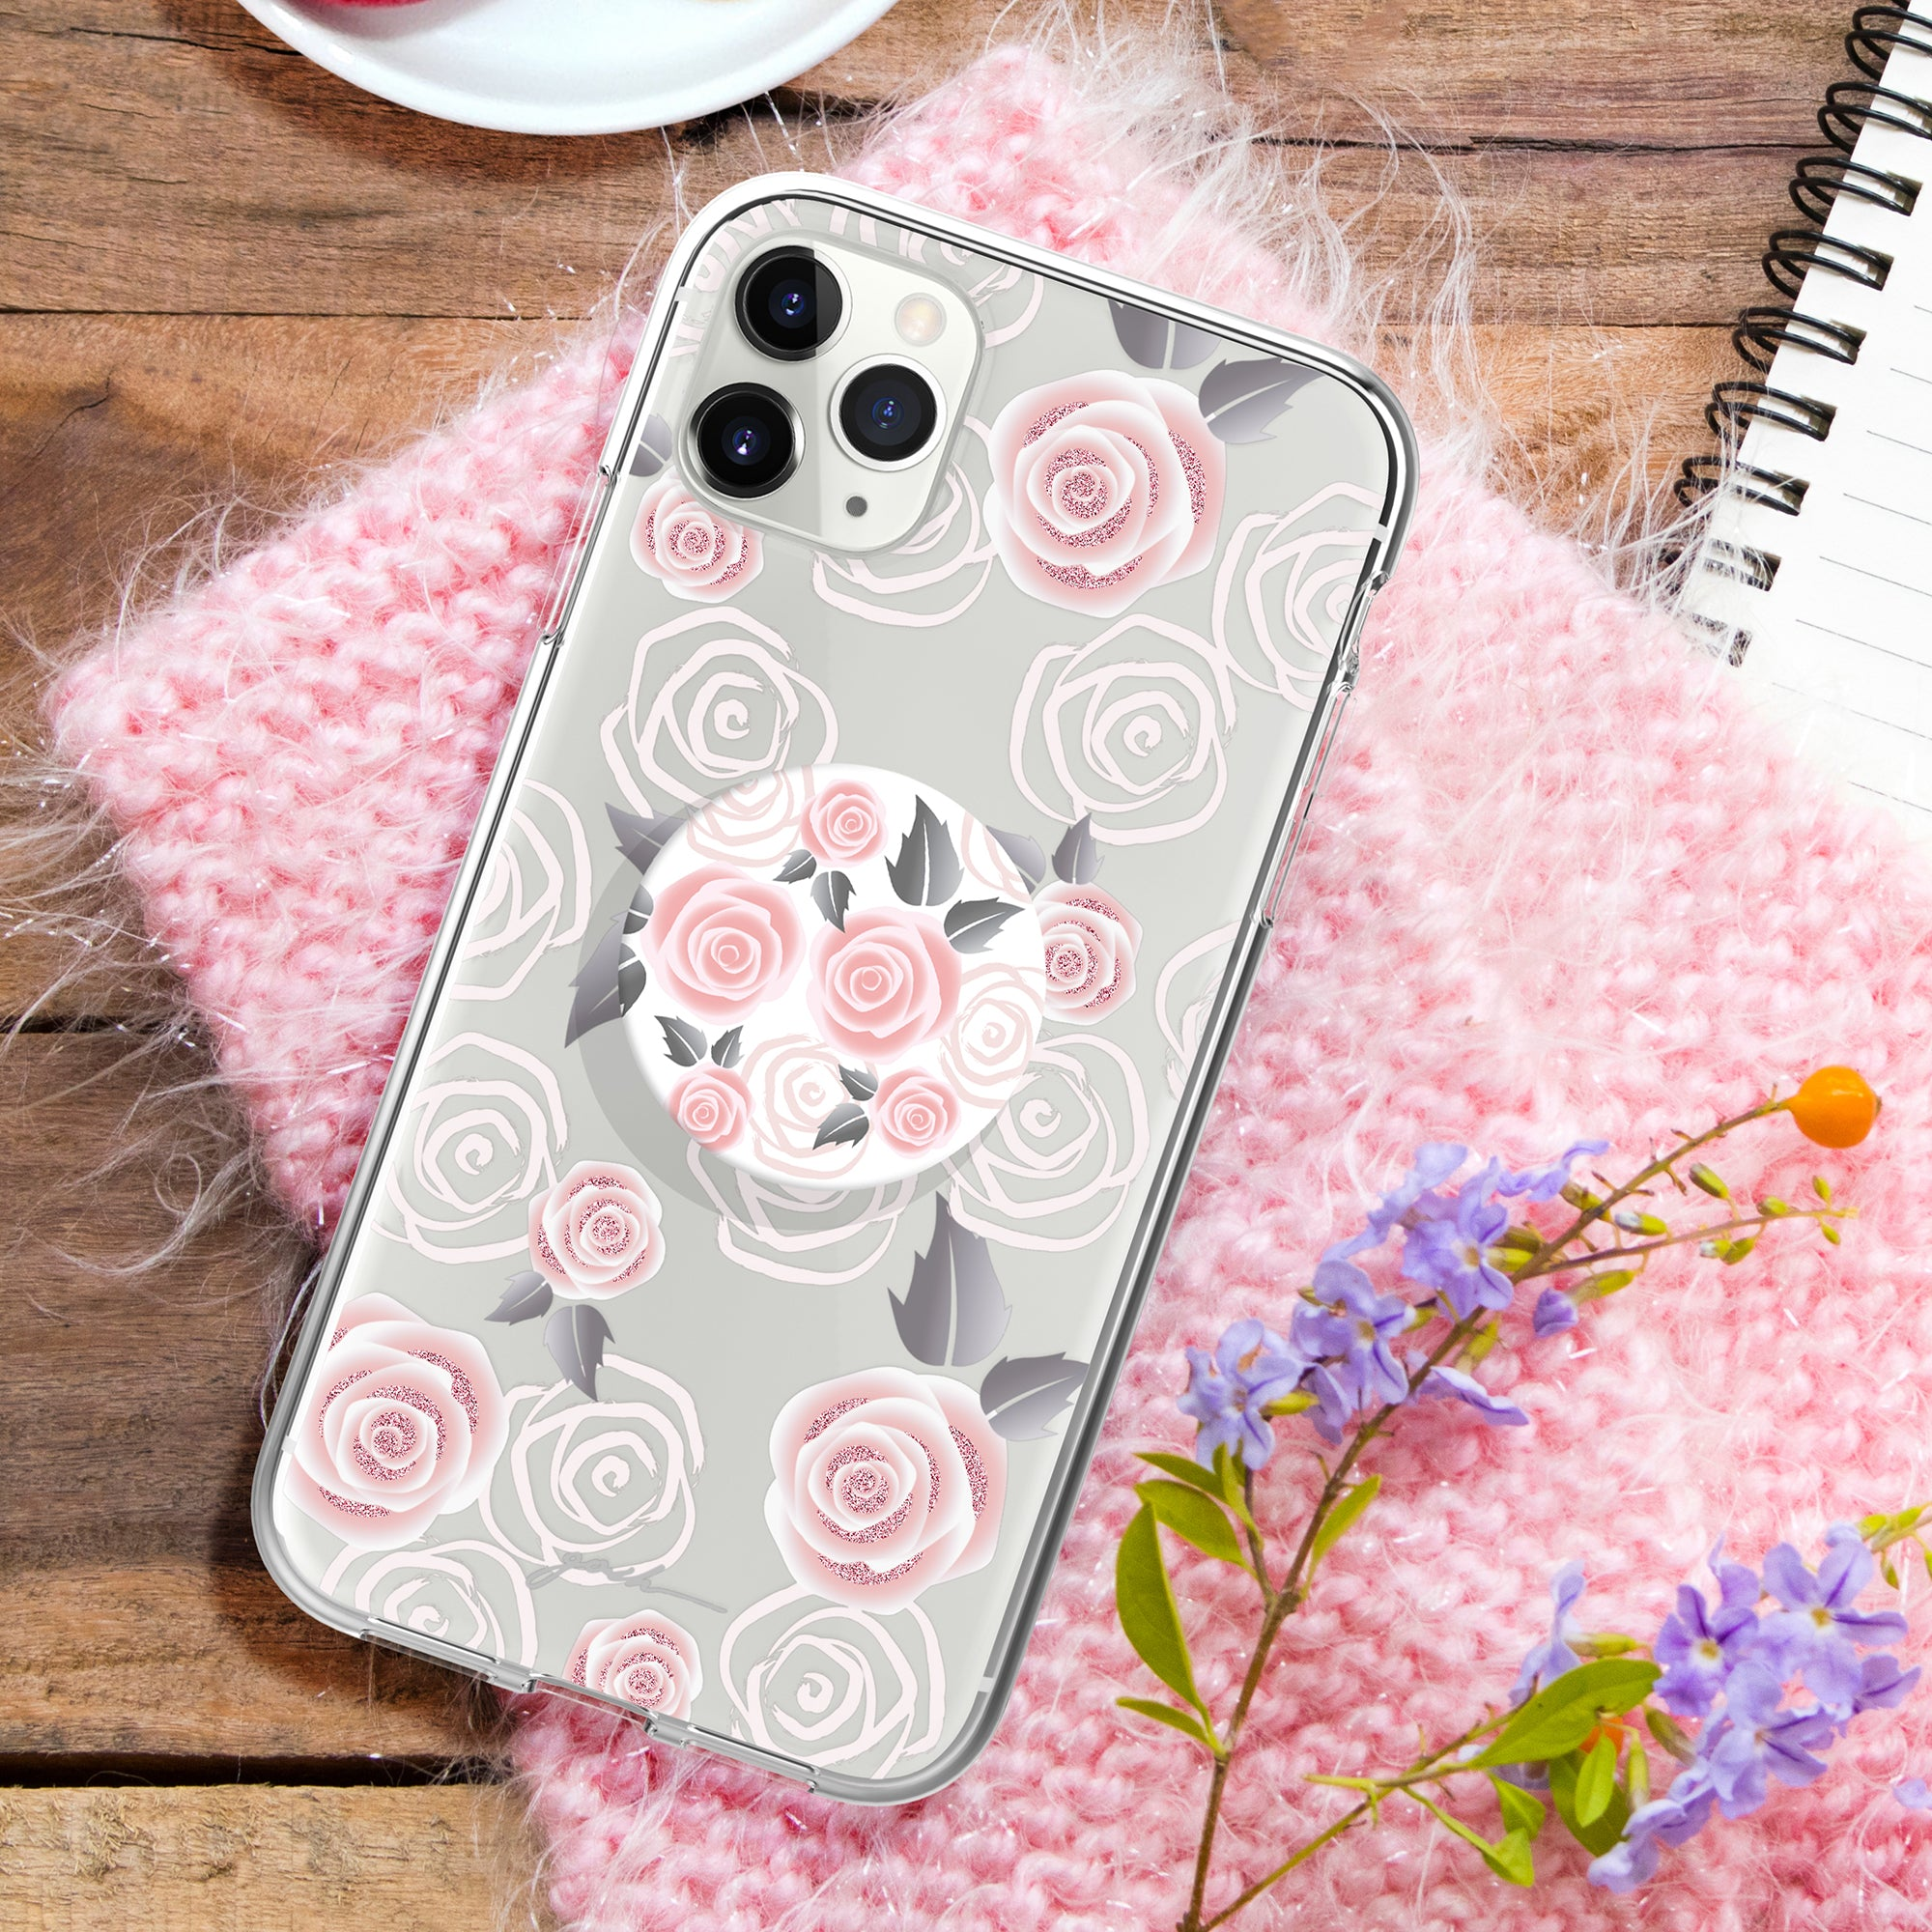 Gosh + Pop Hybrid iPhone 11 Pro Case Rosy Loves